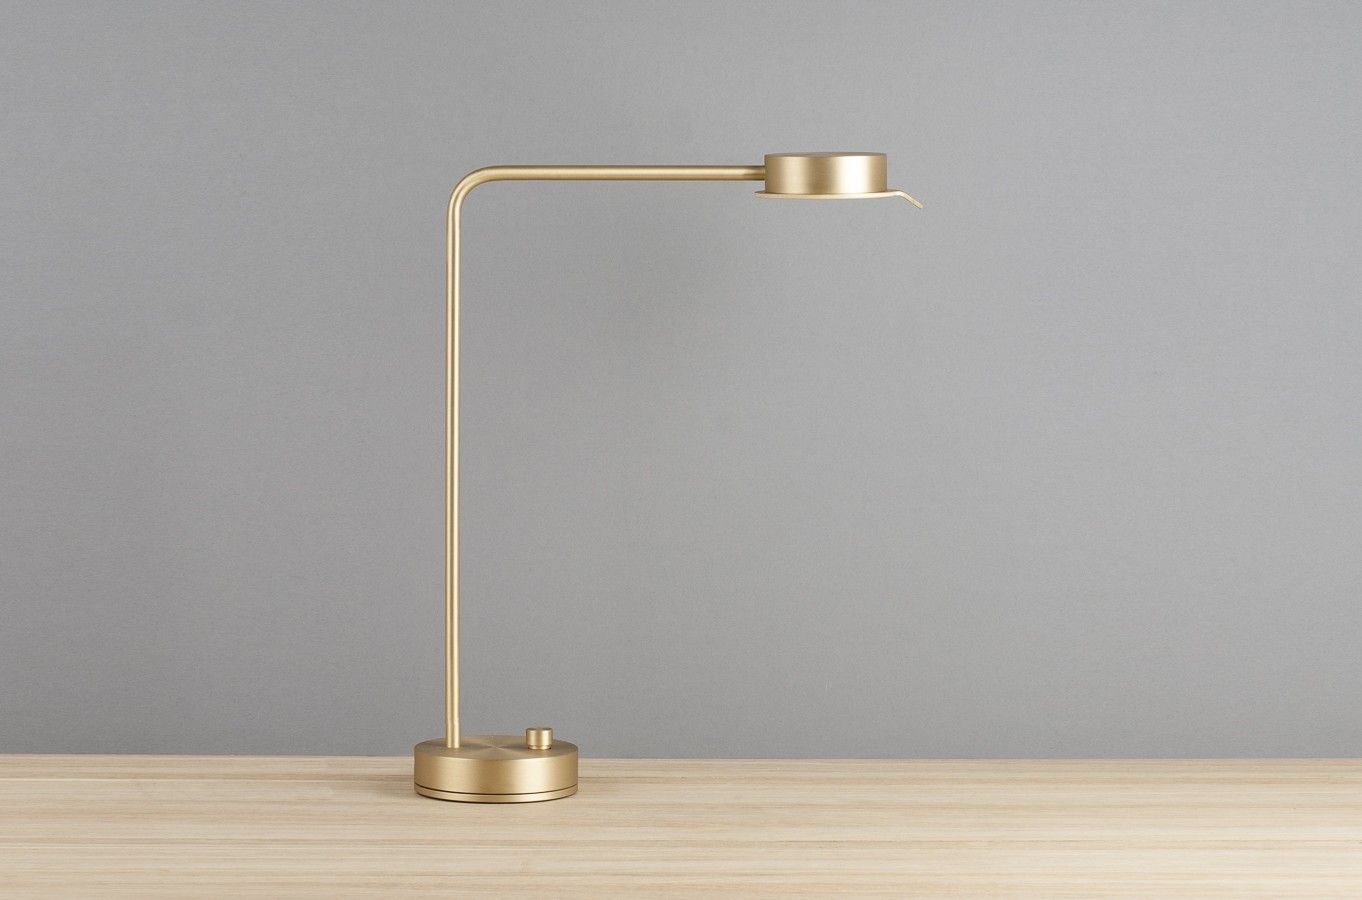 Reading Lamp: Wästberg x David Chipperfield